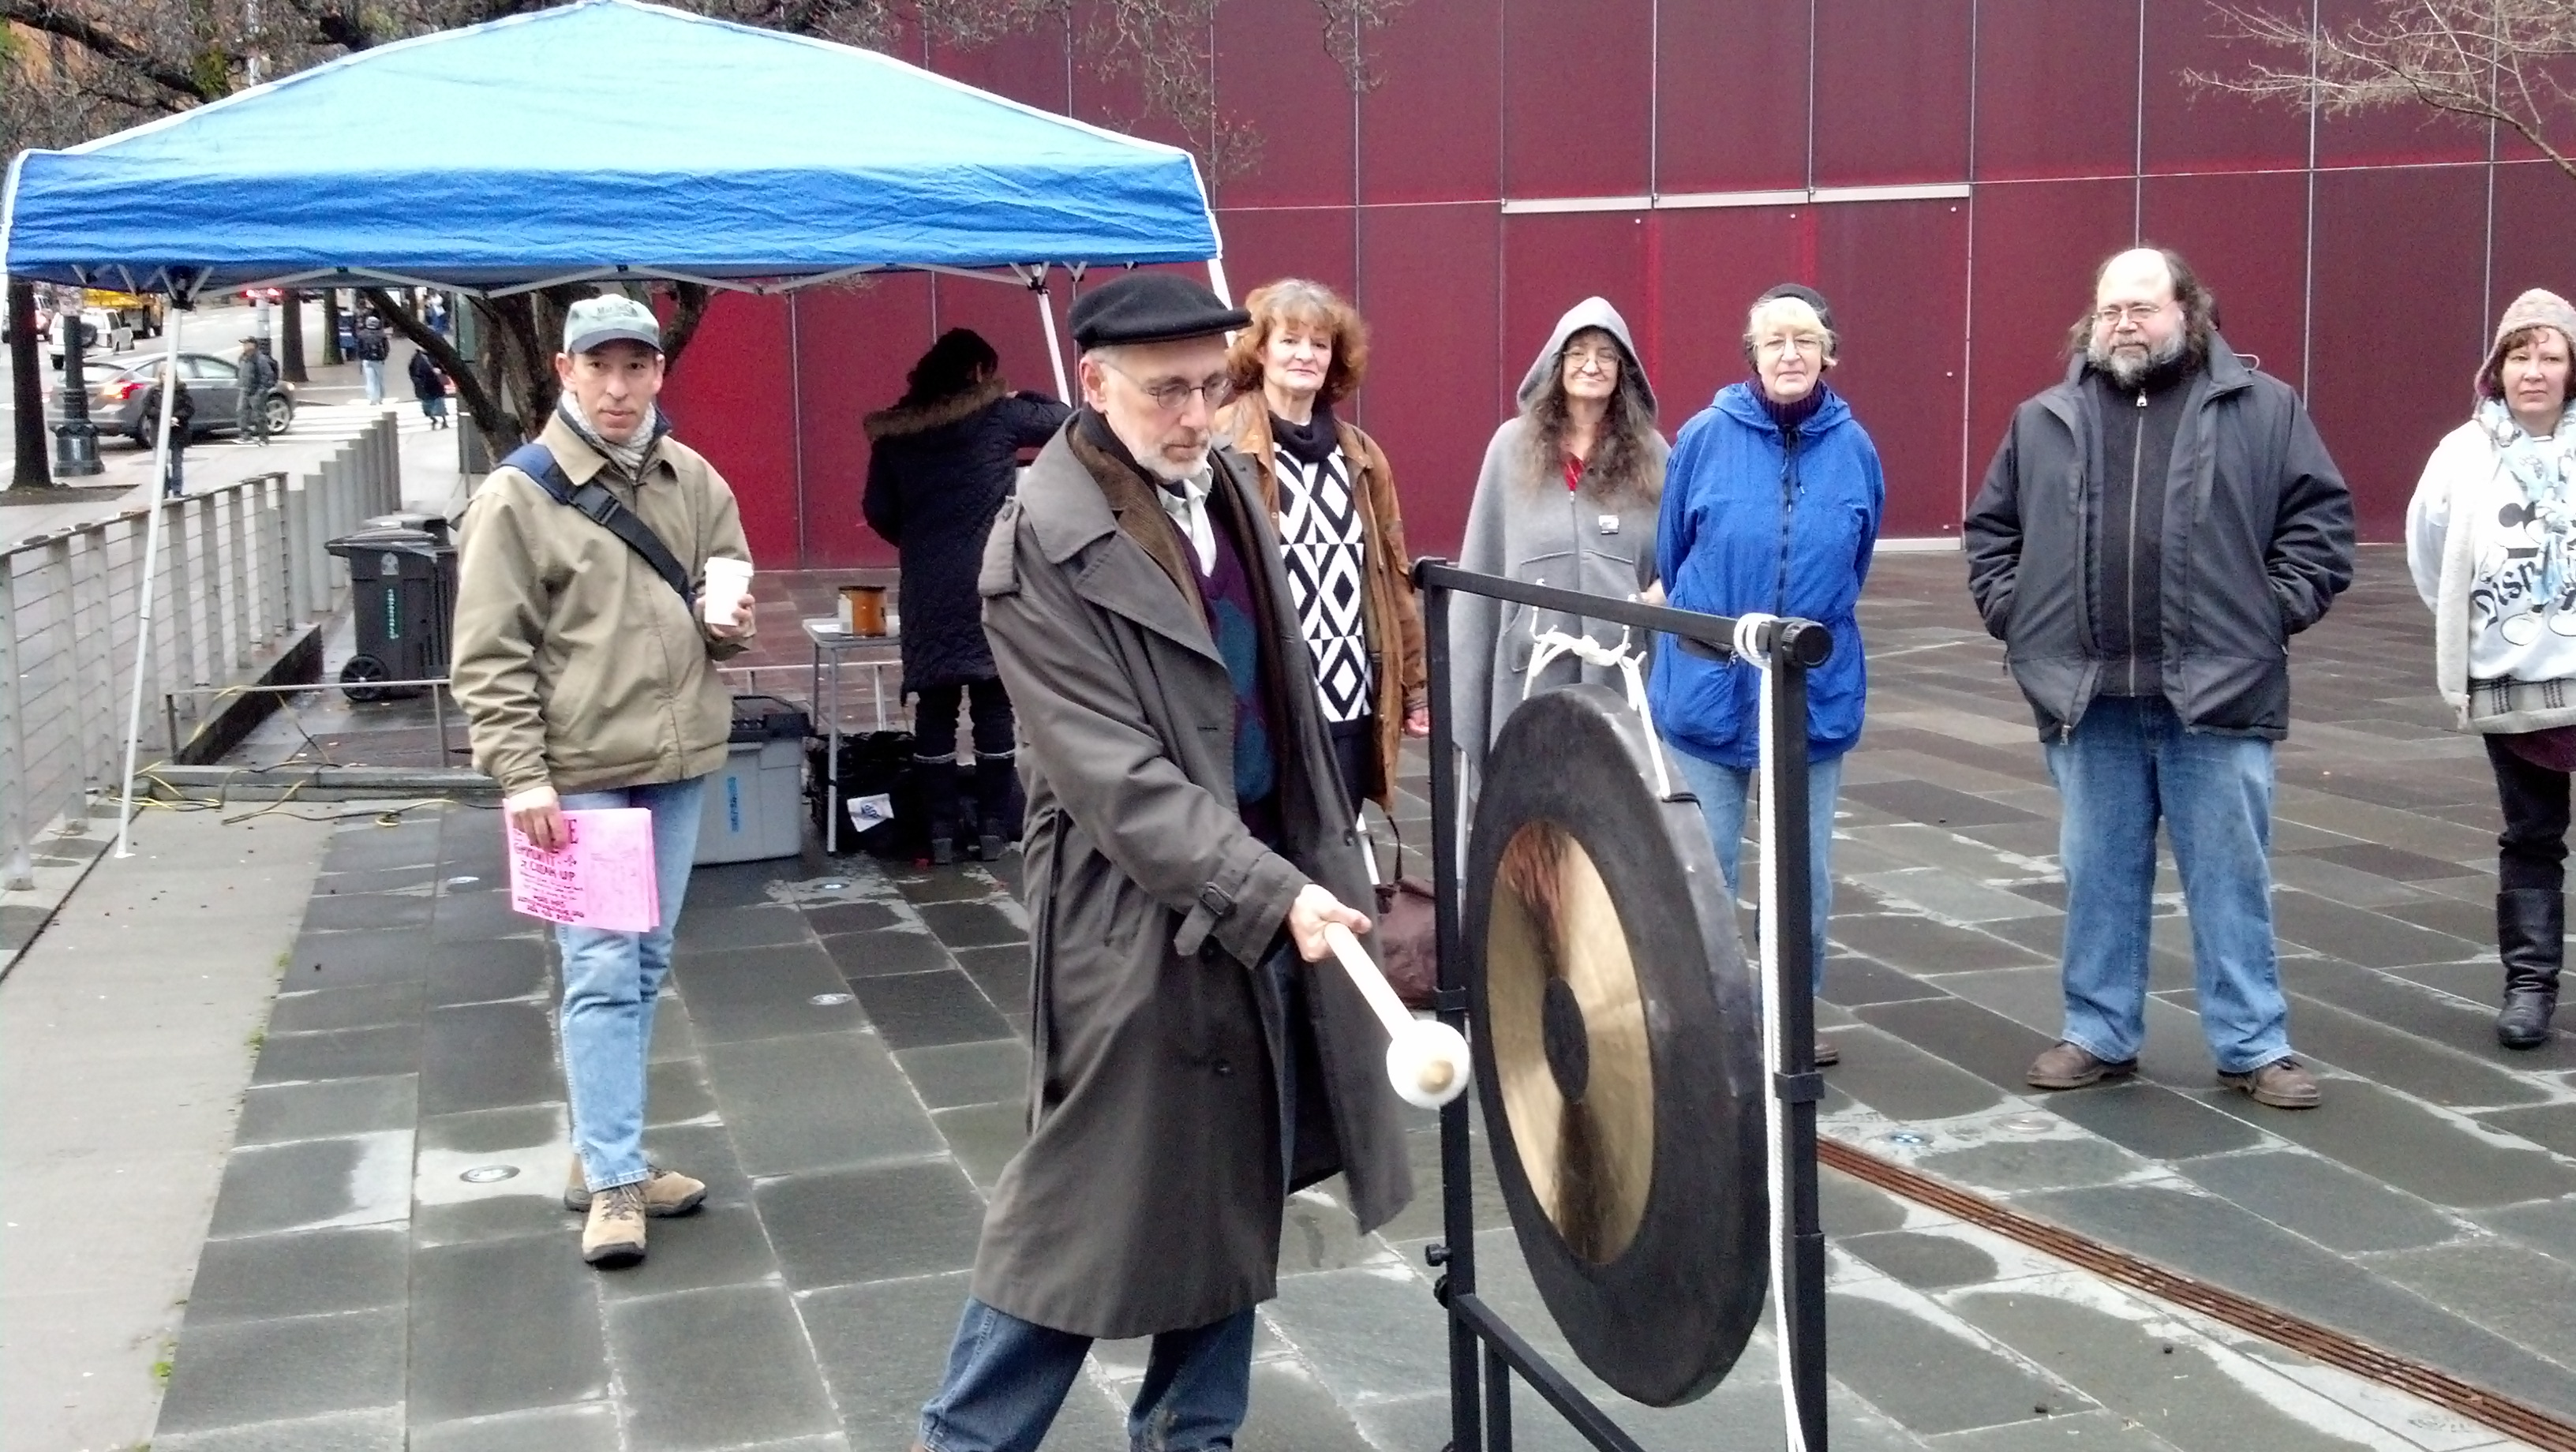 One night count: ringing the gong #1 photo